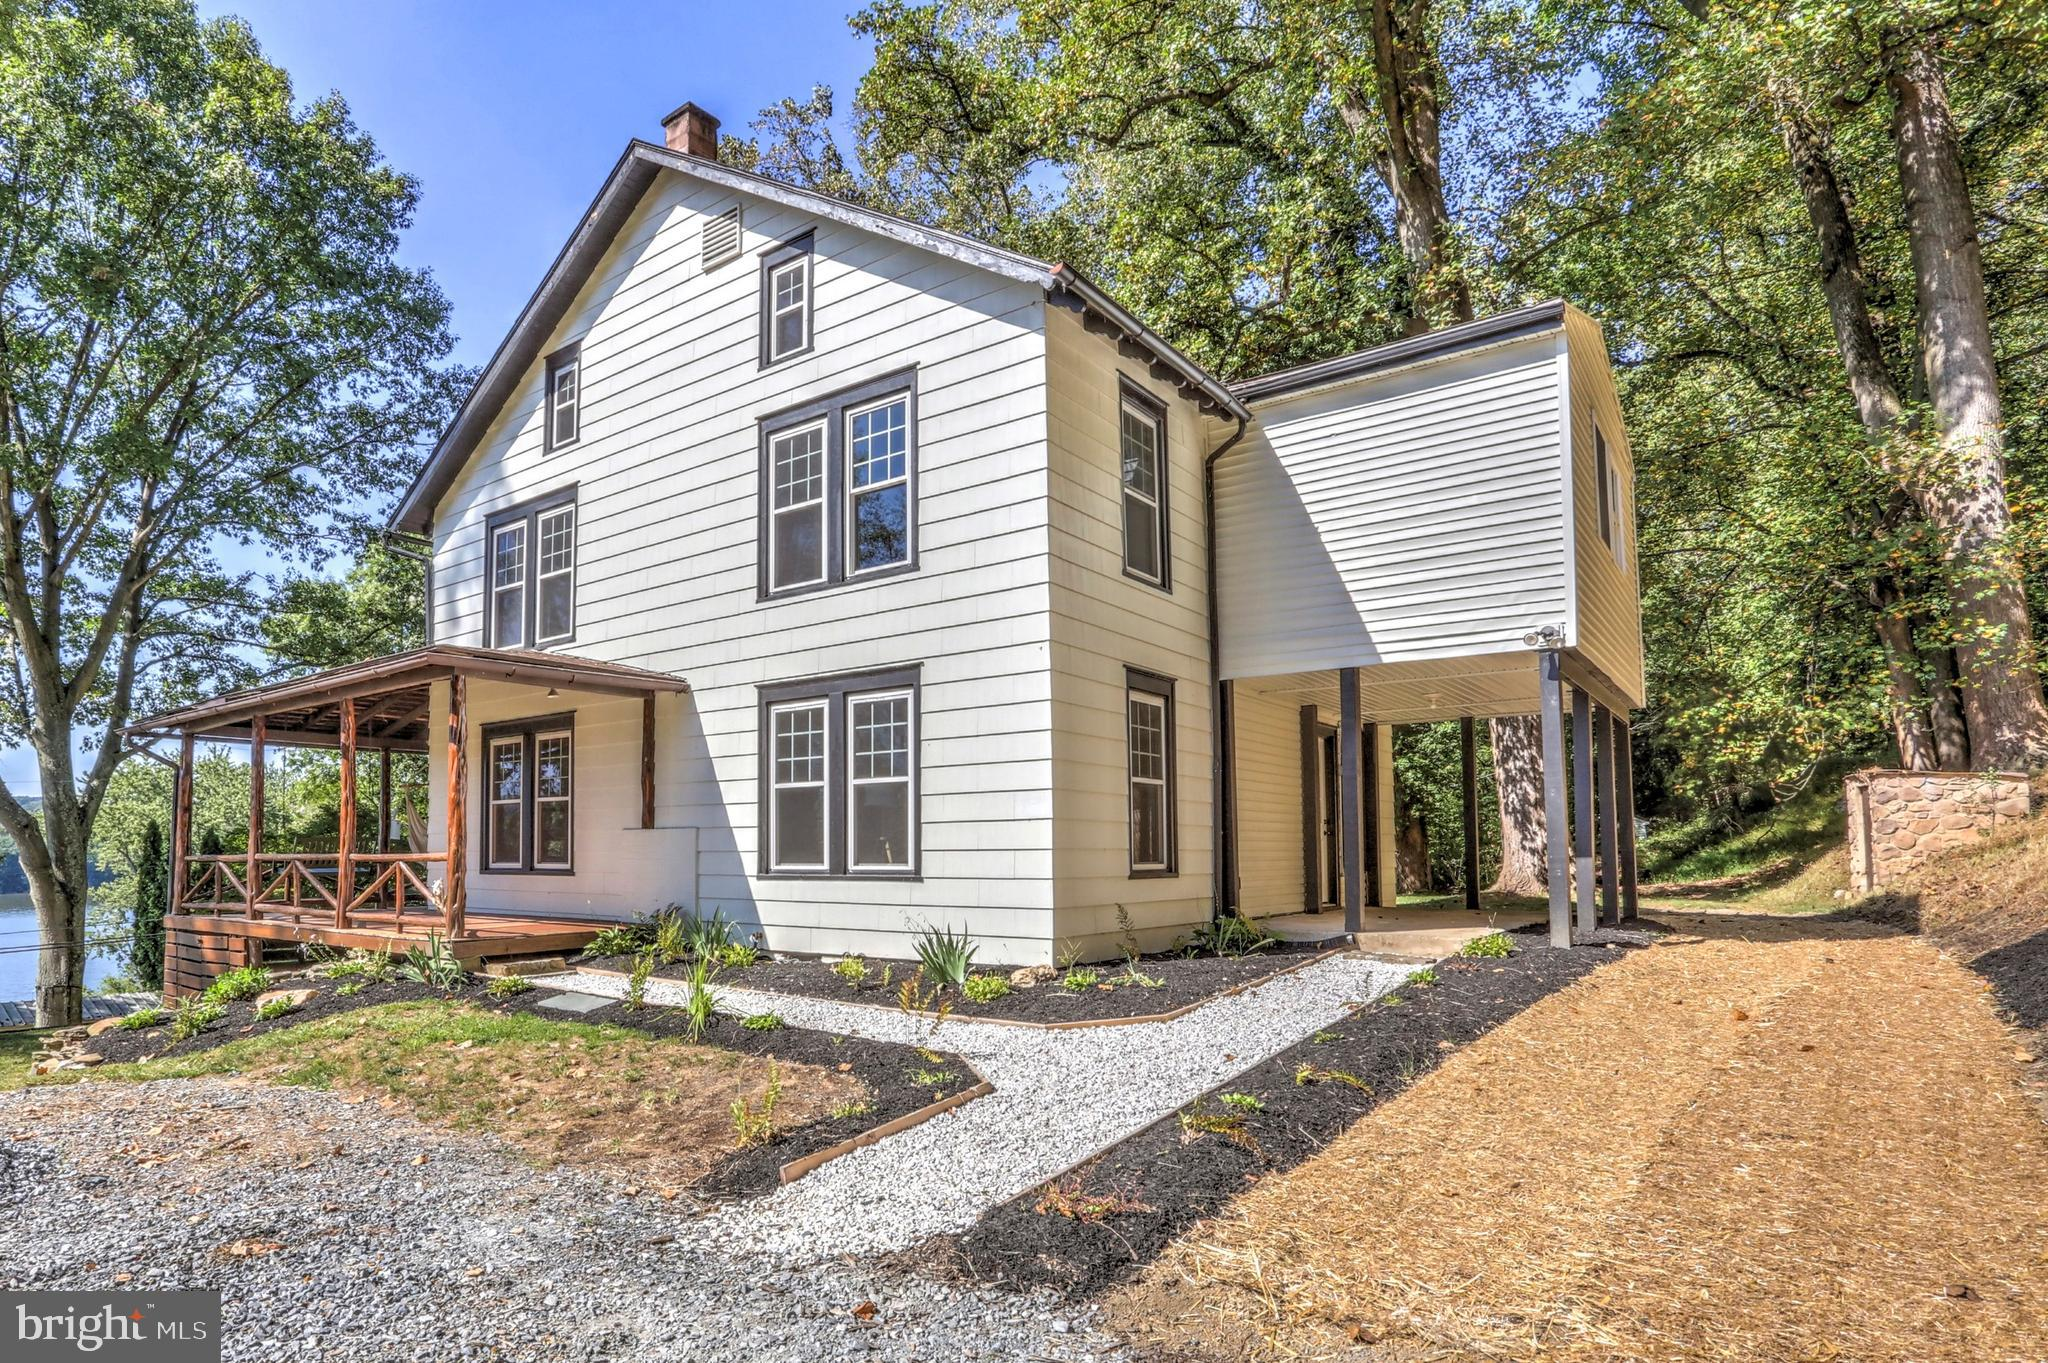 1428 RIVER HILL ROAD, PEQUEA, PA 17565